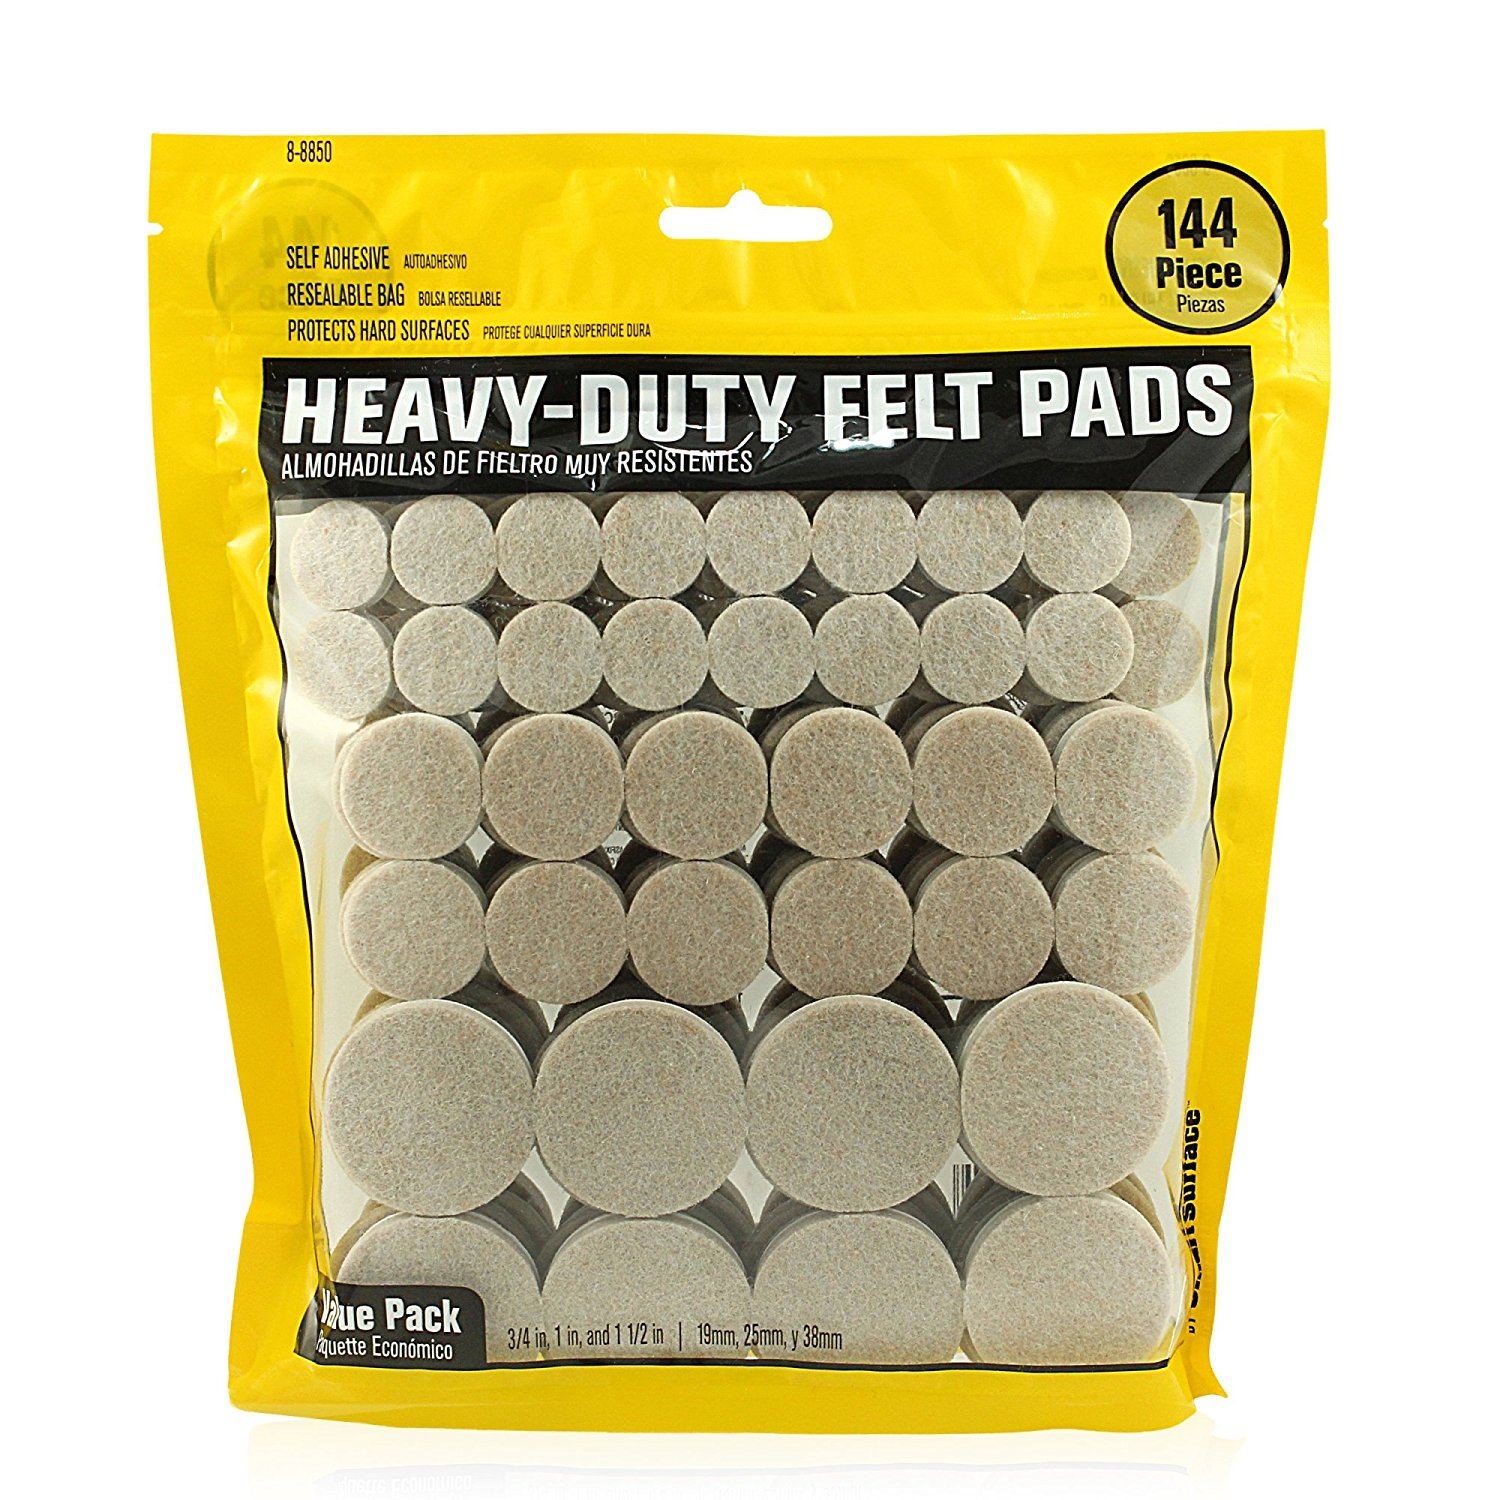 Heavy Duty Self Adhesive Furniture Felt Pads 3 4 Inch 1 2 Round Oatmeal 144 Piece Value Variety Pack In Resealable Bag Smart Surface